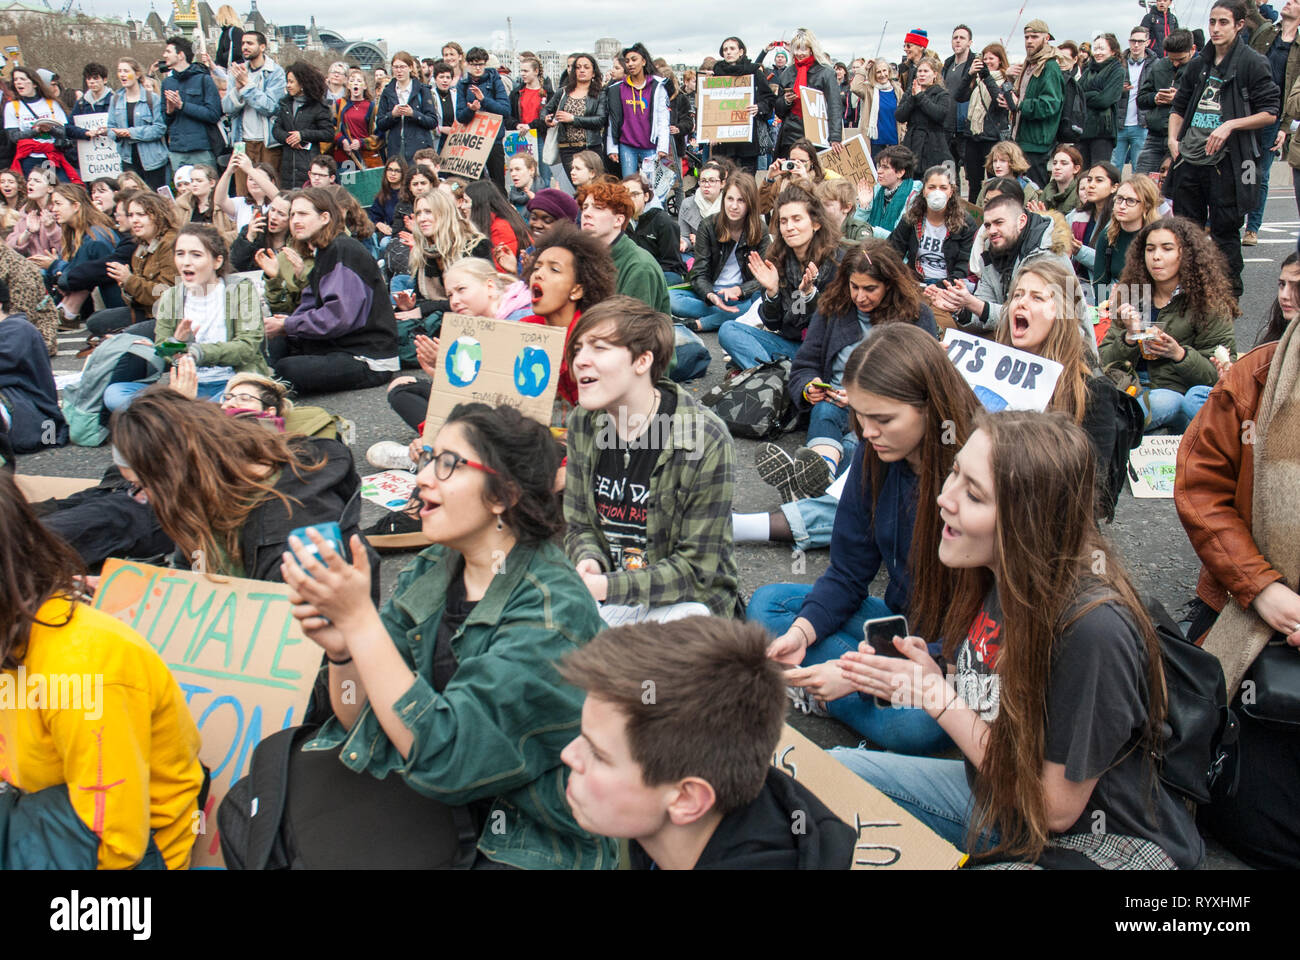 London, UK. 15th March, 2019. School students campaigning against climate change block Westminster Bridge Credit: Maggie sully/Alamy Live News. School children on strike, part of the 'FridaysforFuture' protest against climate change gather outside Parliament, London, and have a sit down protest on Westminster Bridge blocking it to all through traffic. There was then a lively meeting with many young speakers addressing the concerns of the youth about climate justice and global warming. - Stock Image